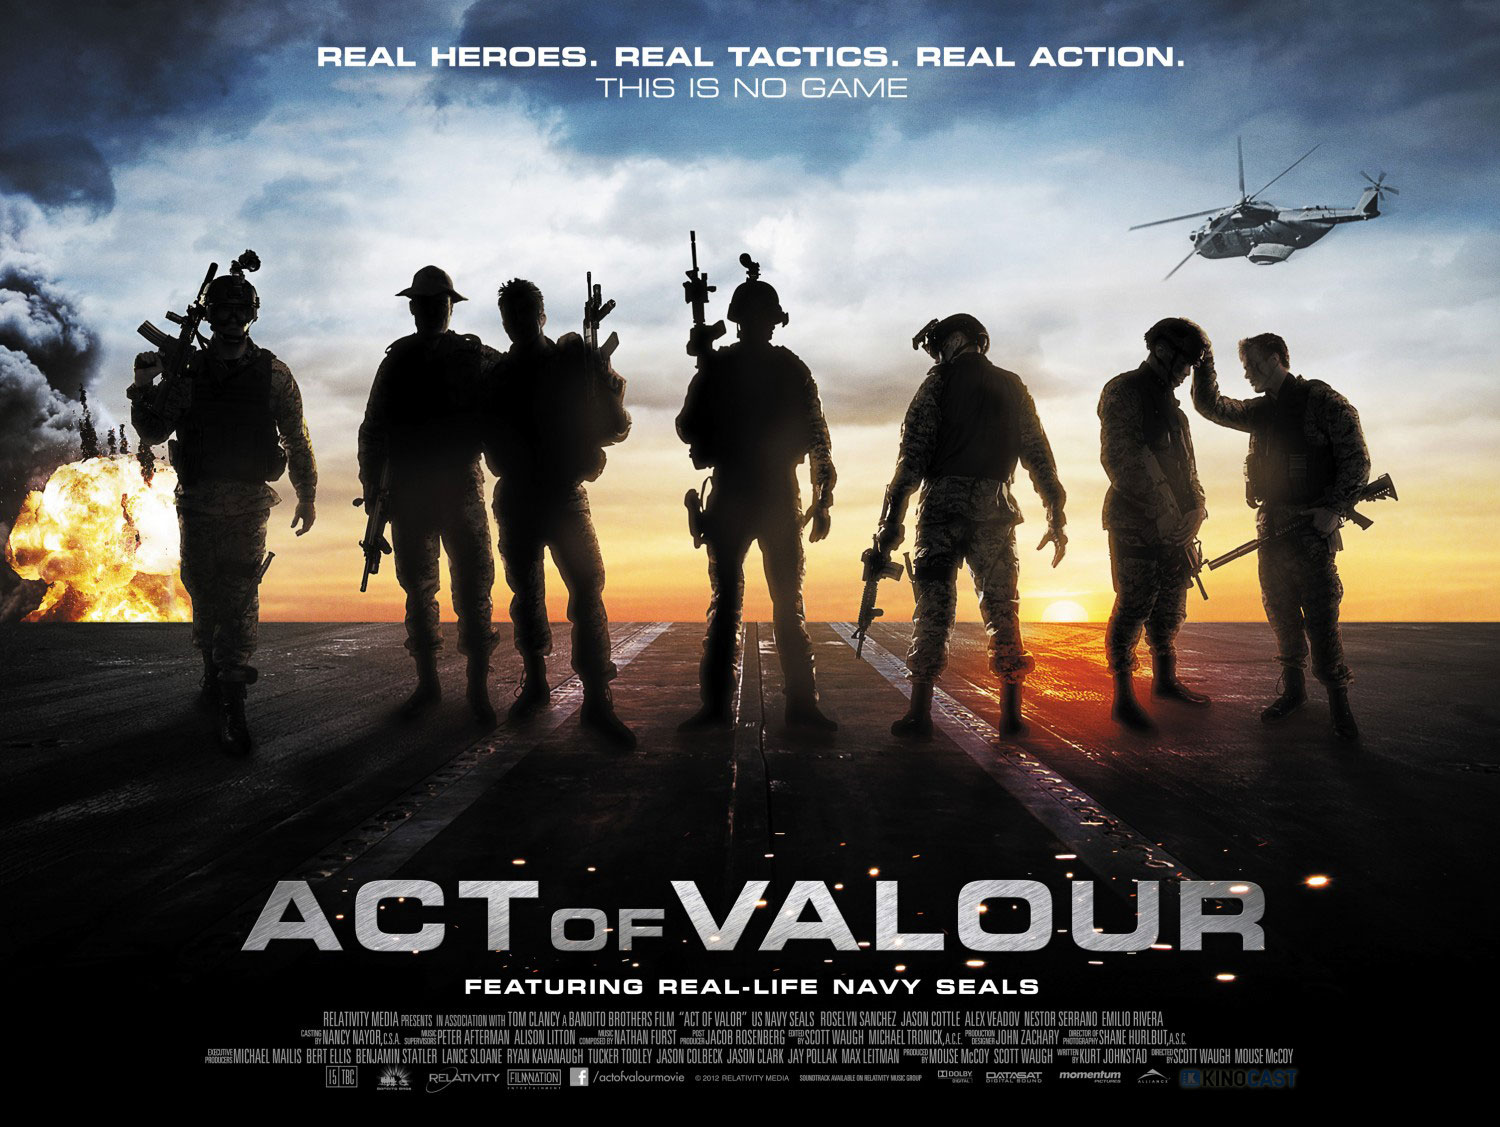 Act of Valor Poster #252 Act of Valor Universum Film Scott Waugh Roselyn Sanchez Nestor Serrano Mike McCoy Marissa Labog Jason Cottle Gonzalo Menendez Emilio Rivera Alex Veadov Ailsa Marshall